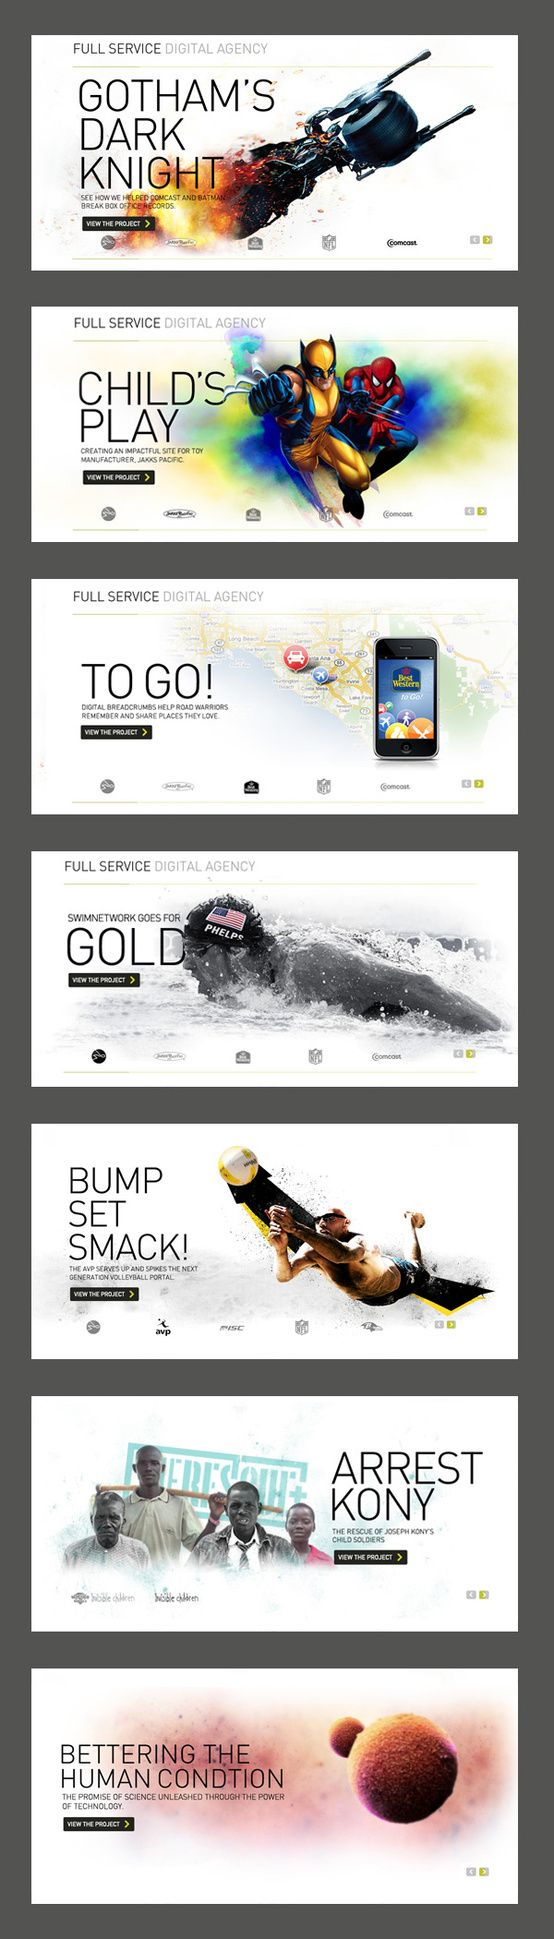 Full Service Digital Agency ~ http://themeforest.net/?ref=Vision7Studio more on…